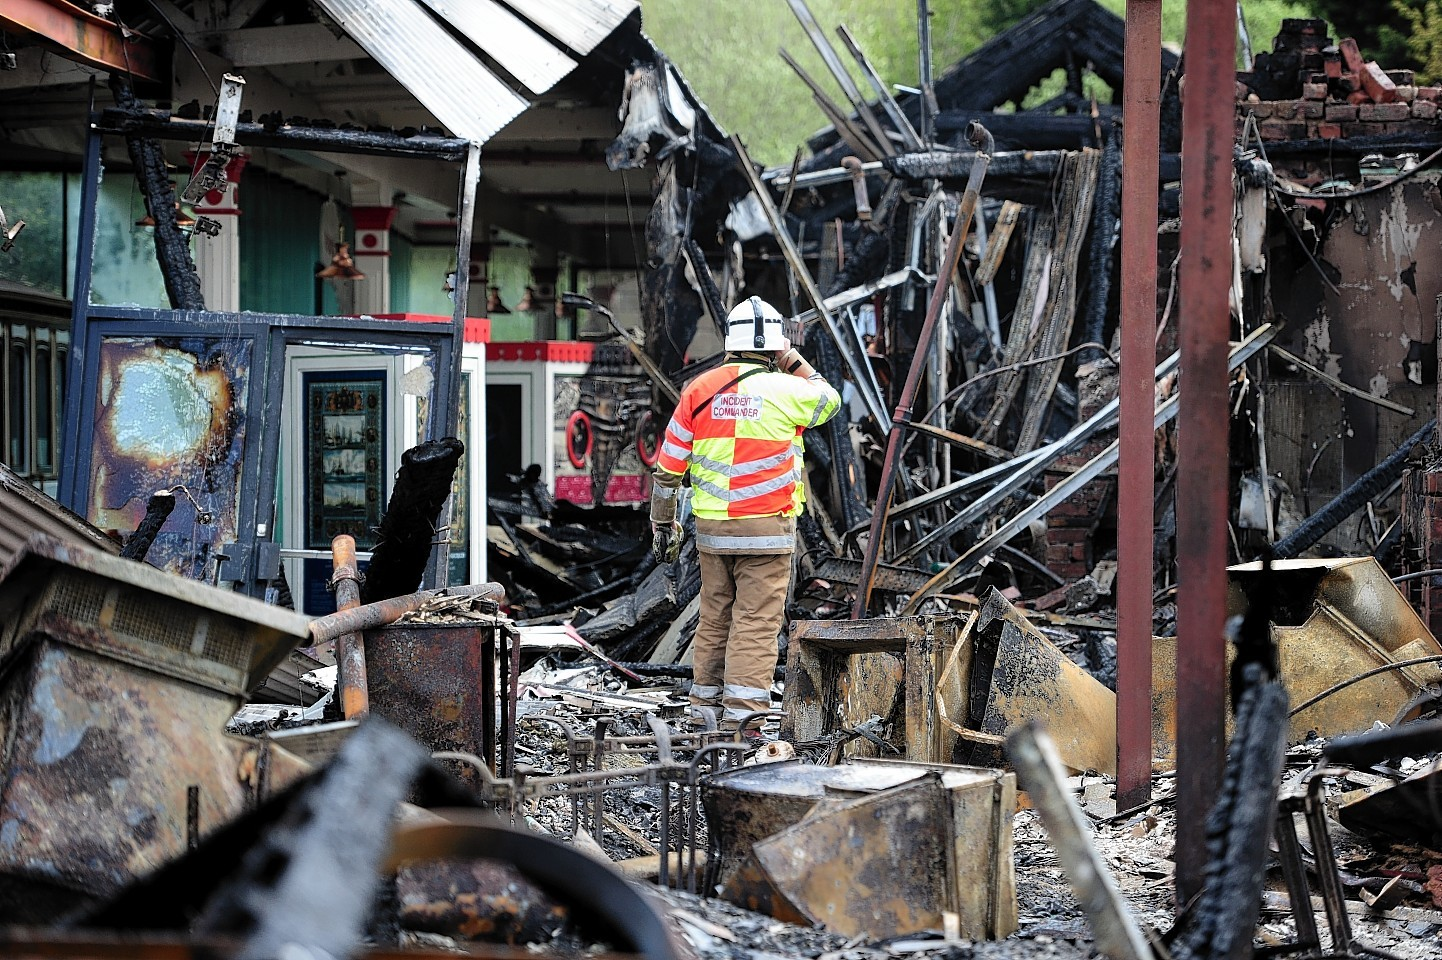 Firefighter surveys damage at the Old Royal Station, Ballater